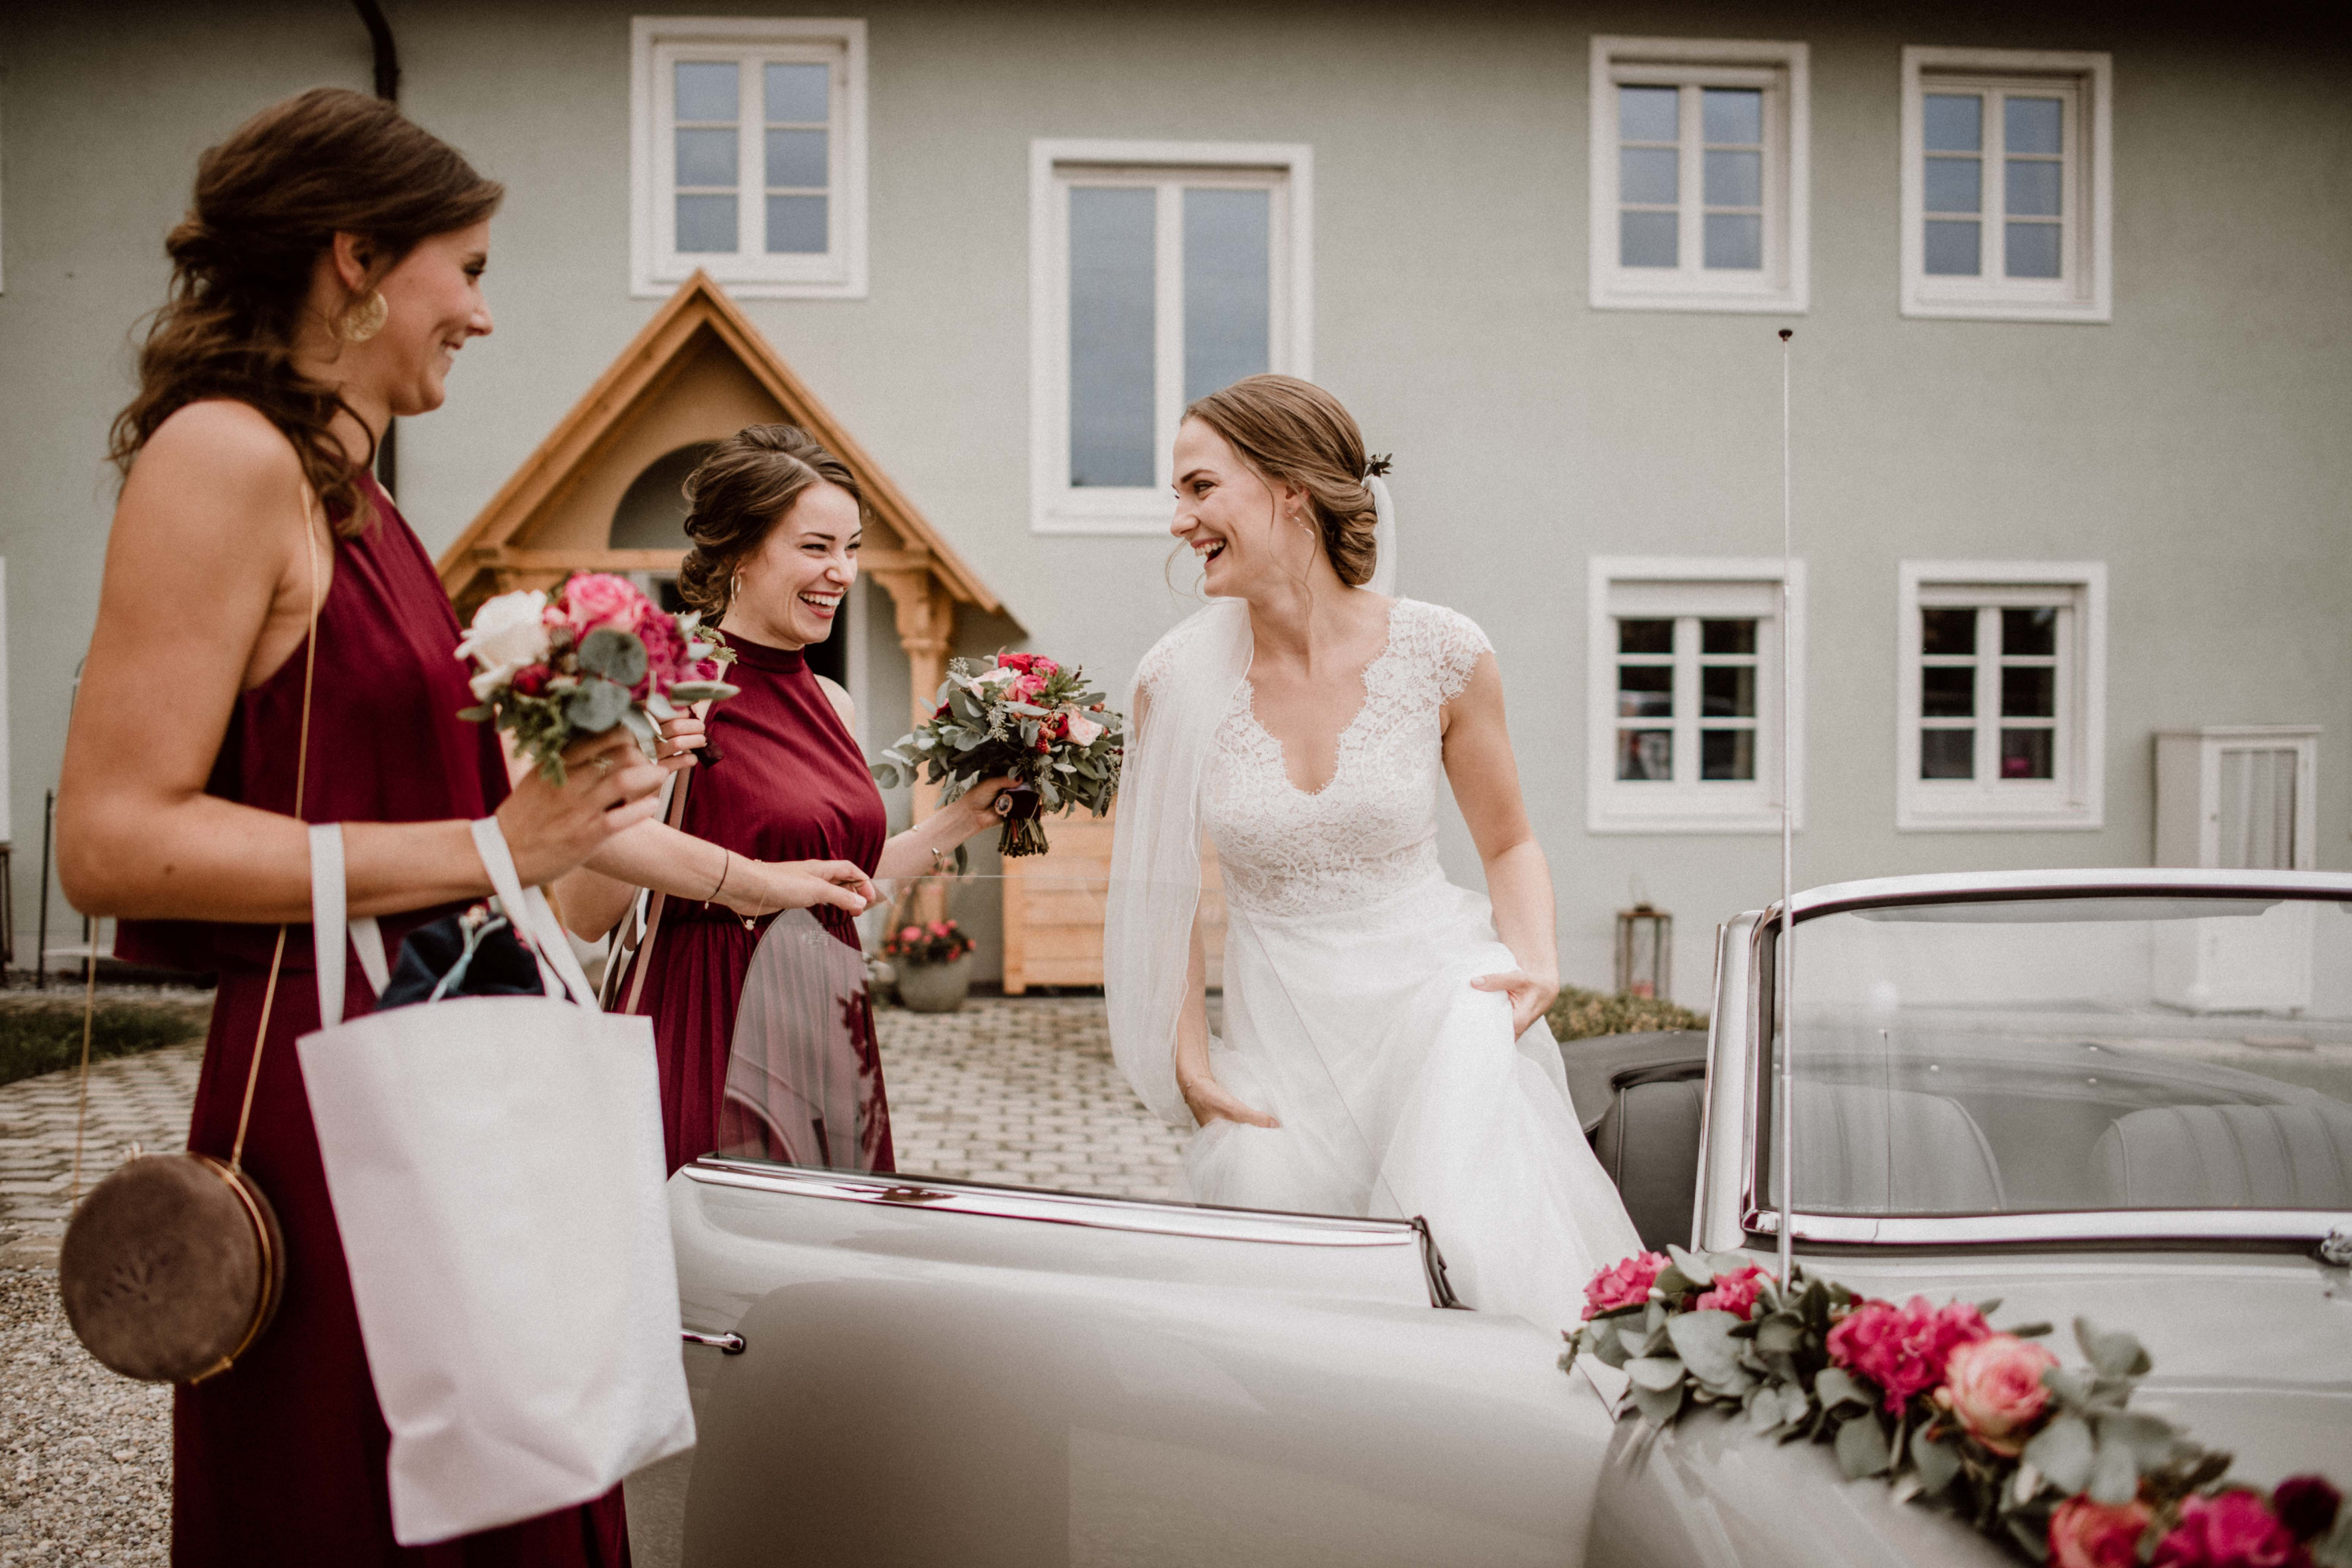 girlsquad bridesmaids sonja poehlmann photography couples muenchen bayern